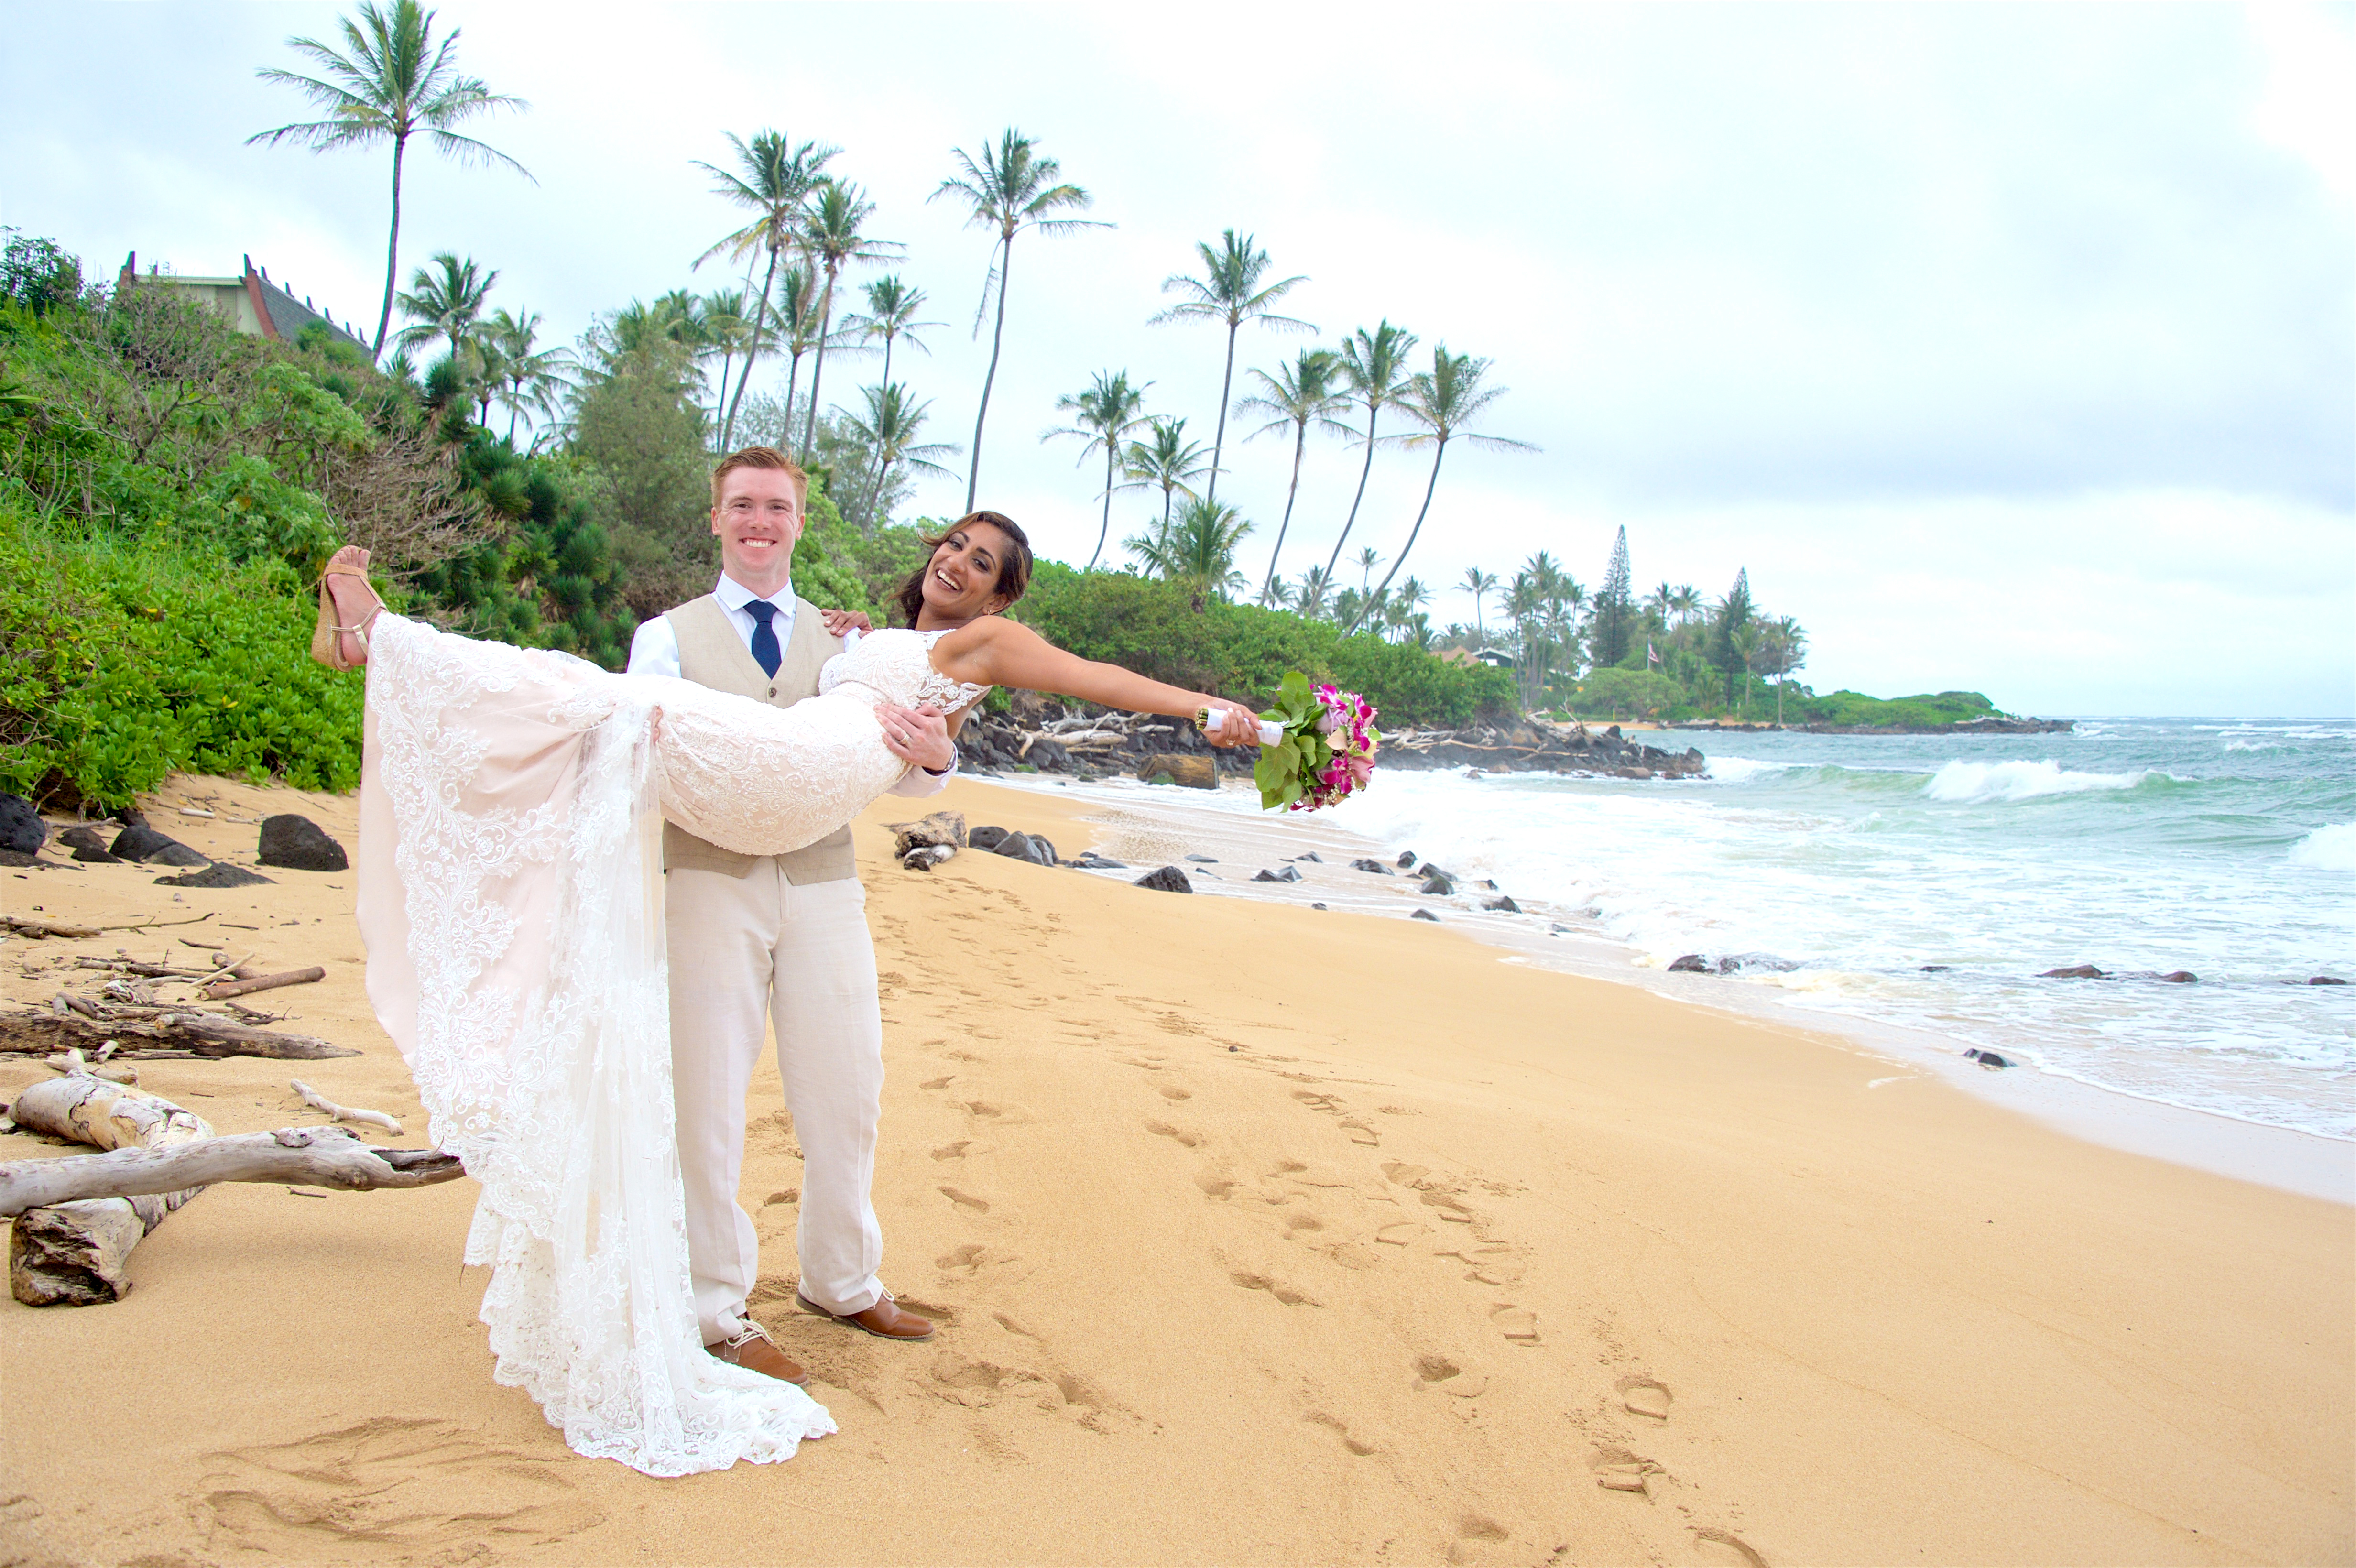 Wedding at Wailua beach.